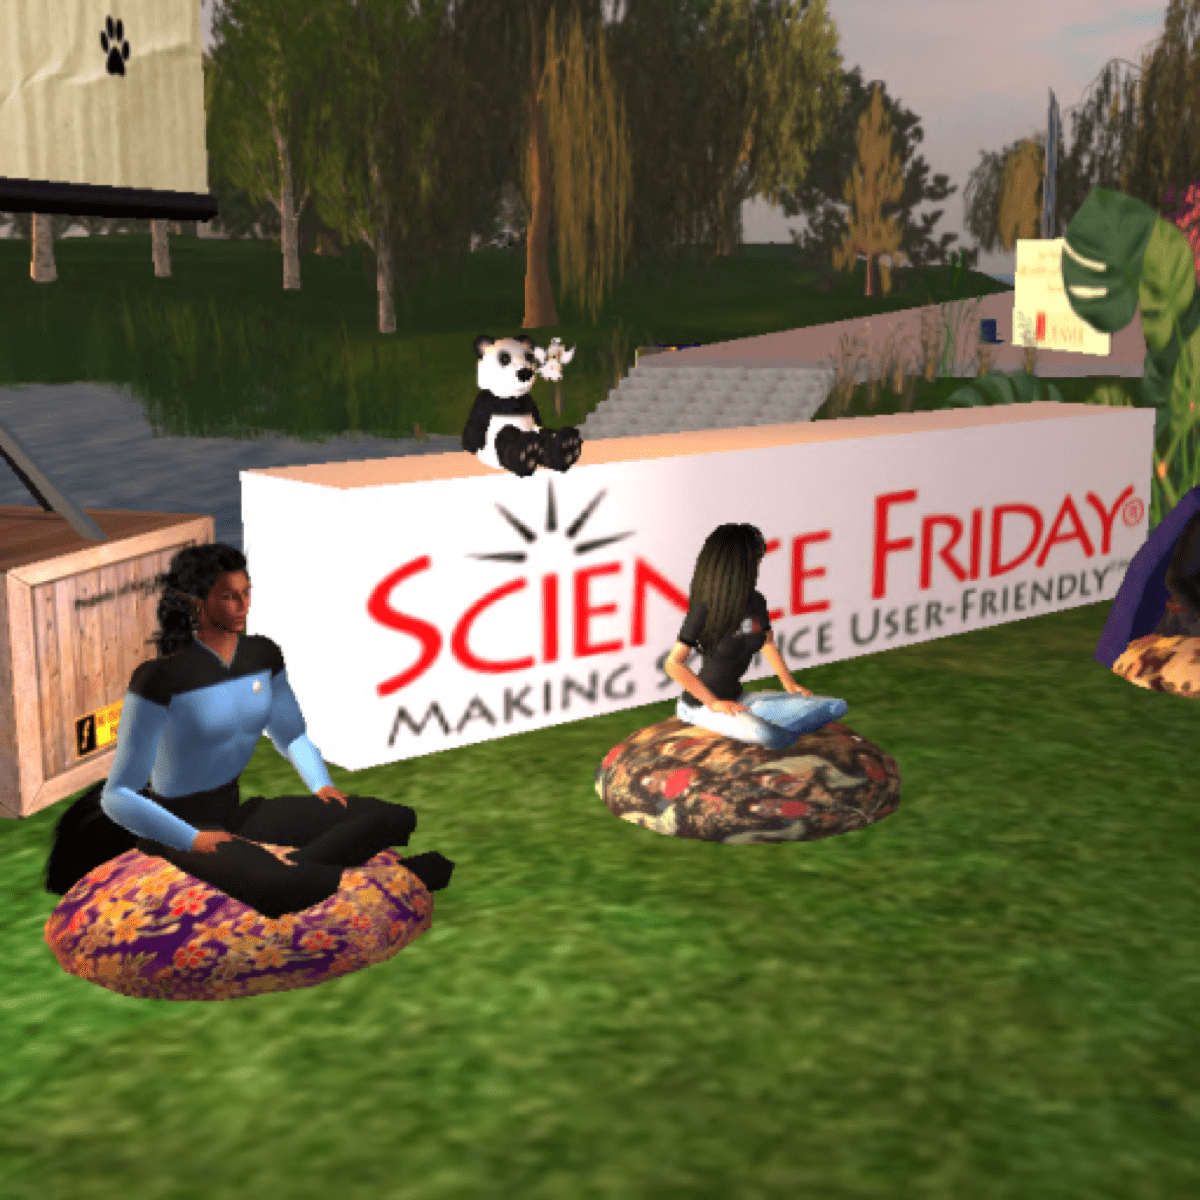 "a virtual world where a star trek uniformed avatar and a female presenting avatar with brown hair sits on cushions in a circle. behind them is a sign that reads ""science friday making science user-friendly."" a panda bear sits atop the sign"